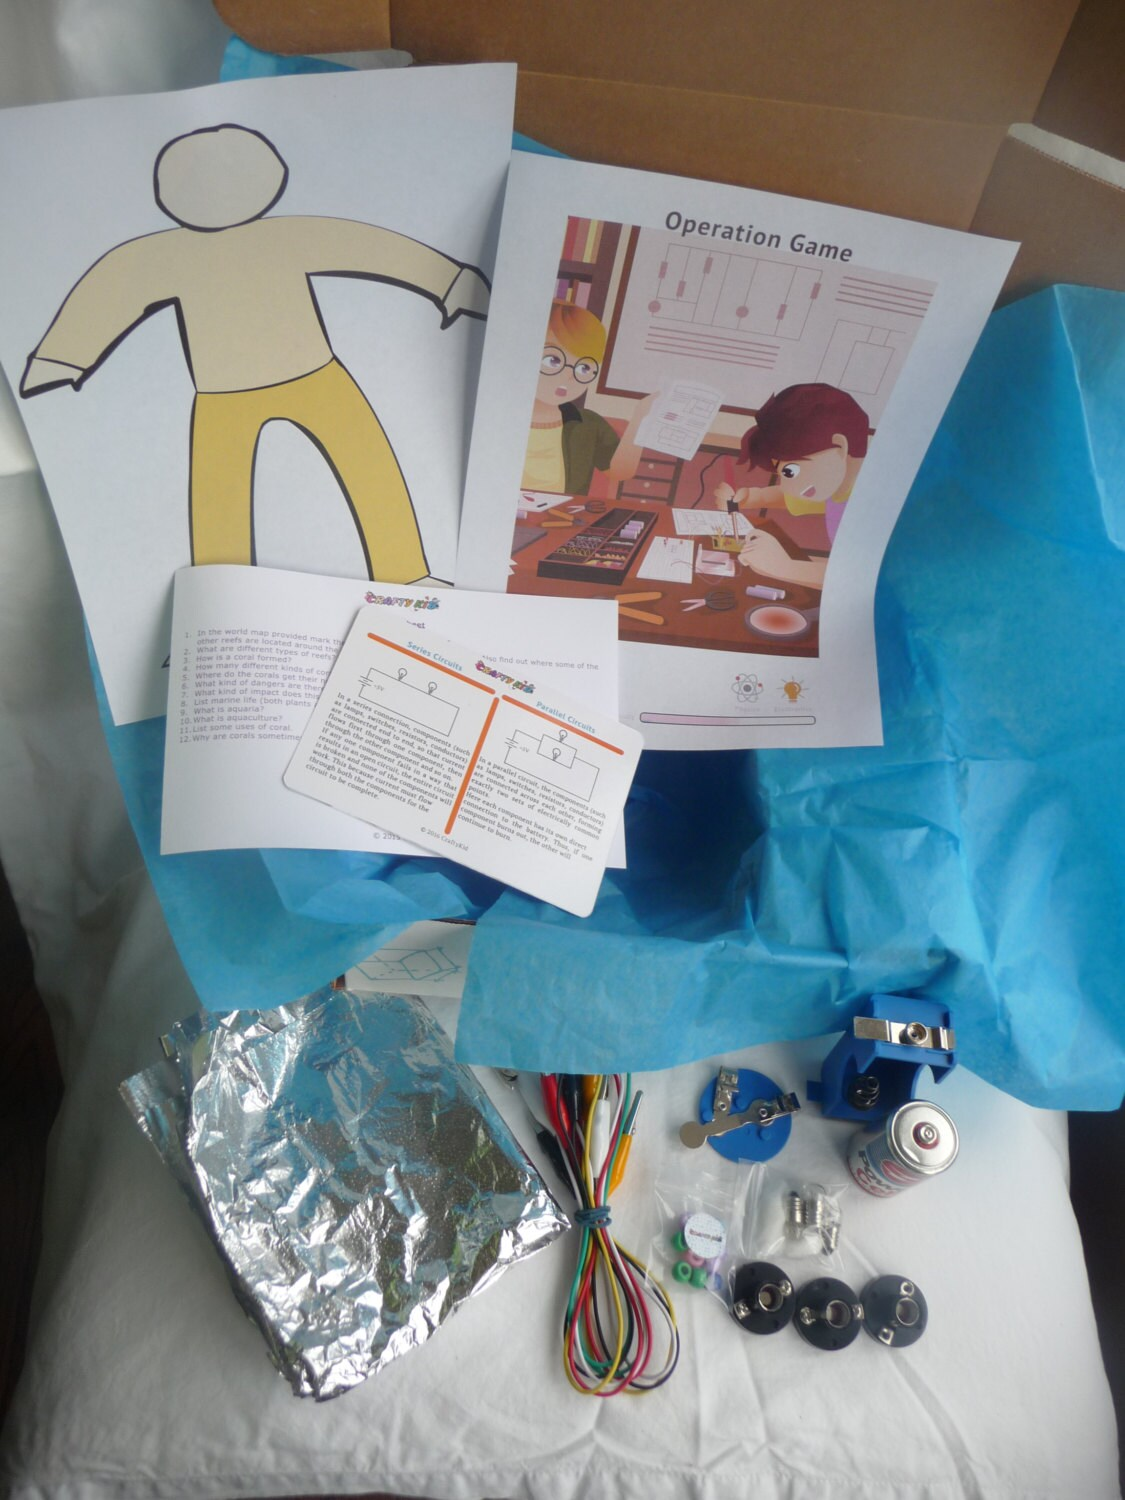 Build You Game Electric Circuits Science Projects For Kids Etsy Circuit School Project Middle Kit Educational Insulation